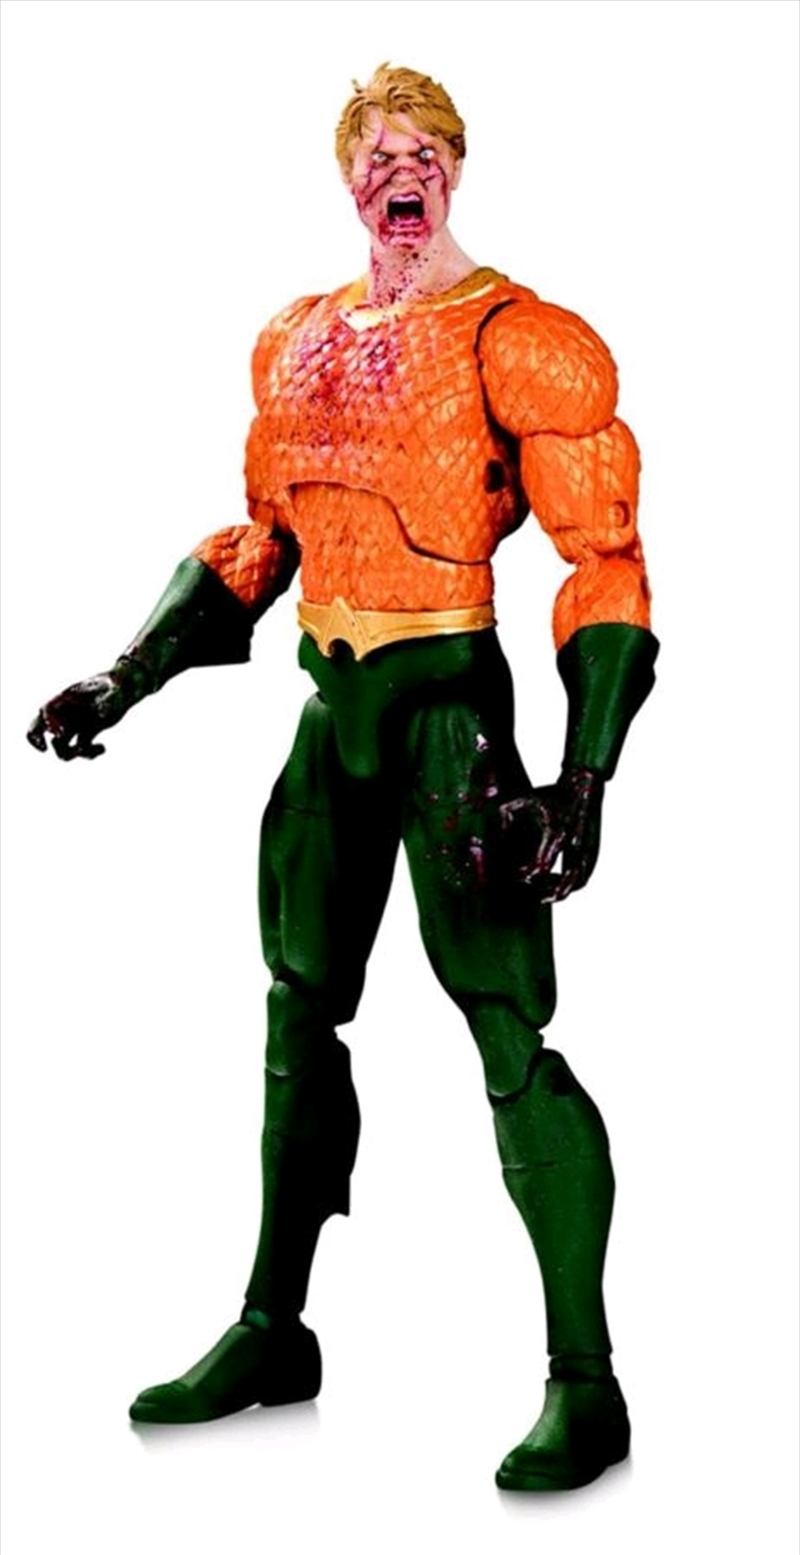 Aquaman - Aquaman Dceased Essentials Action Figure | Merchandise